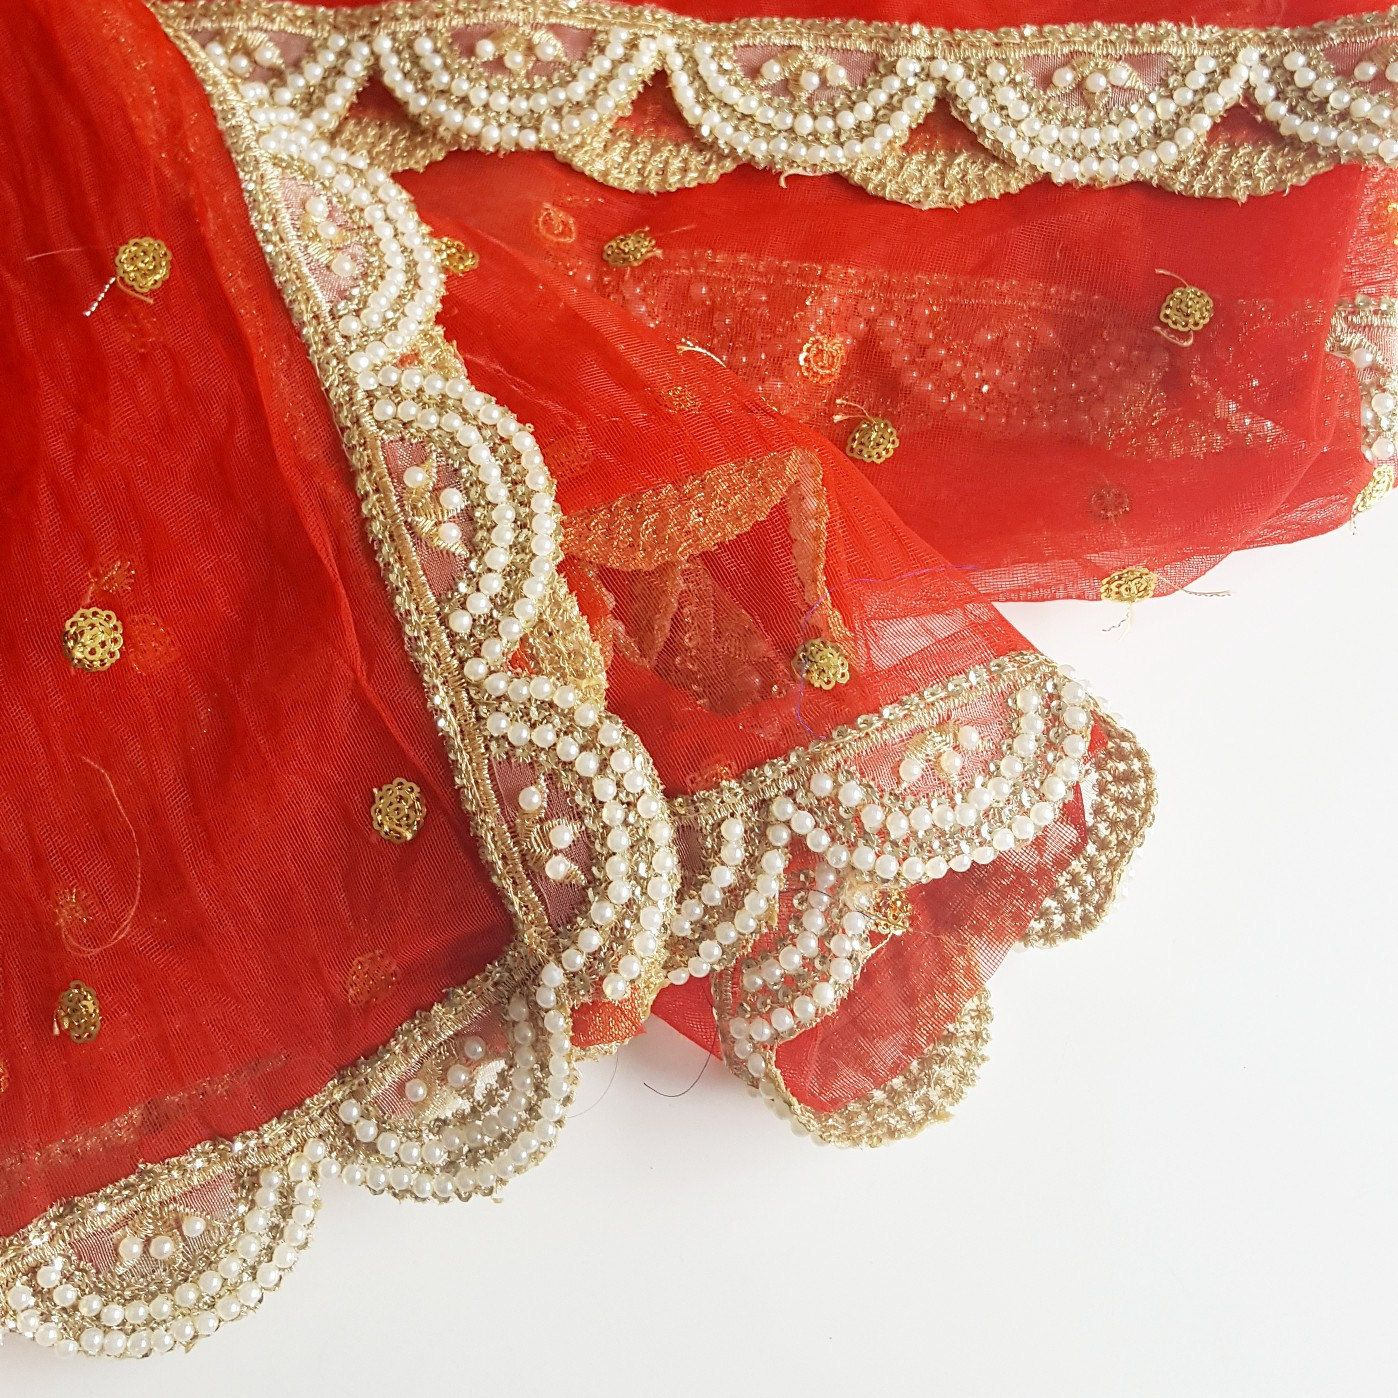 Vibrant Bridal Red This Net Dupatta Is Every Bride S Dream